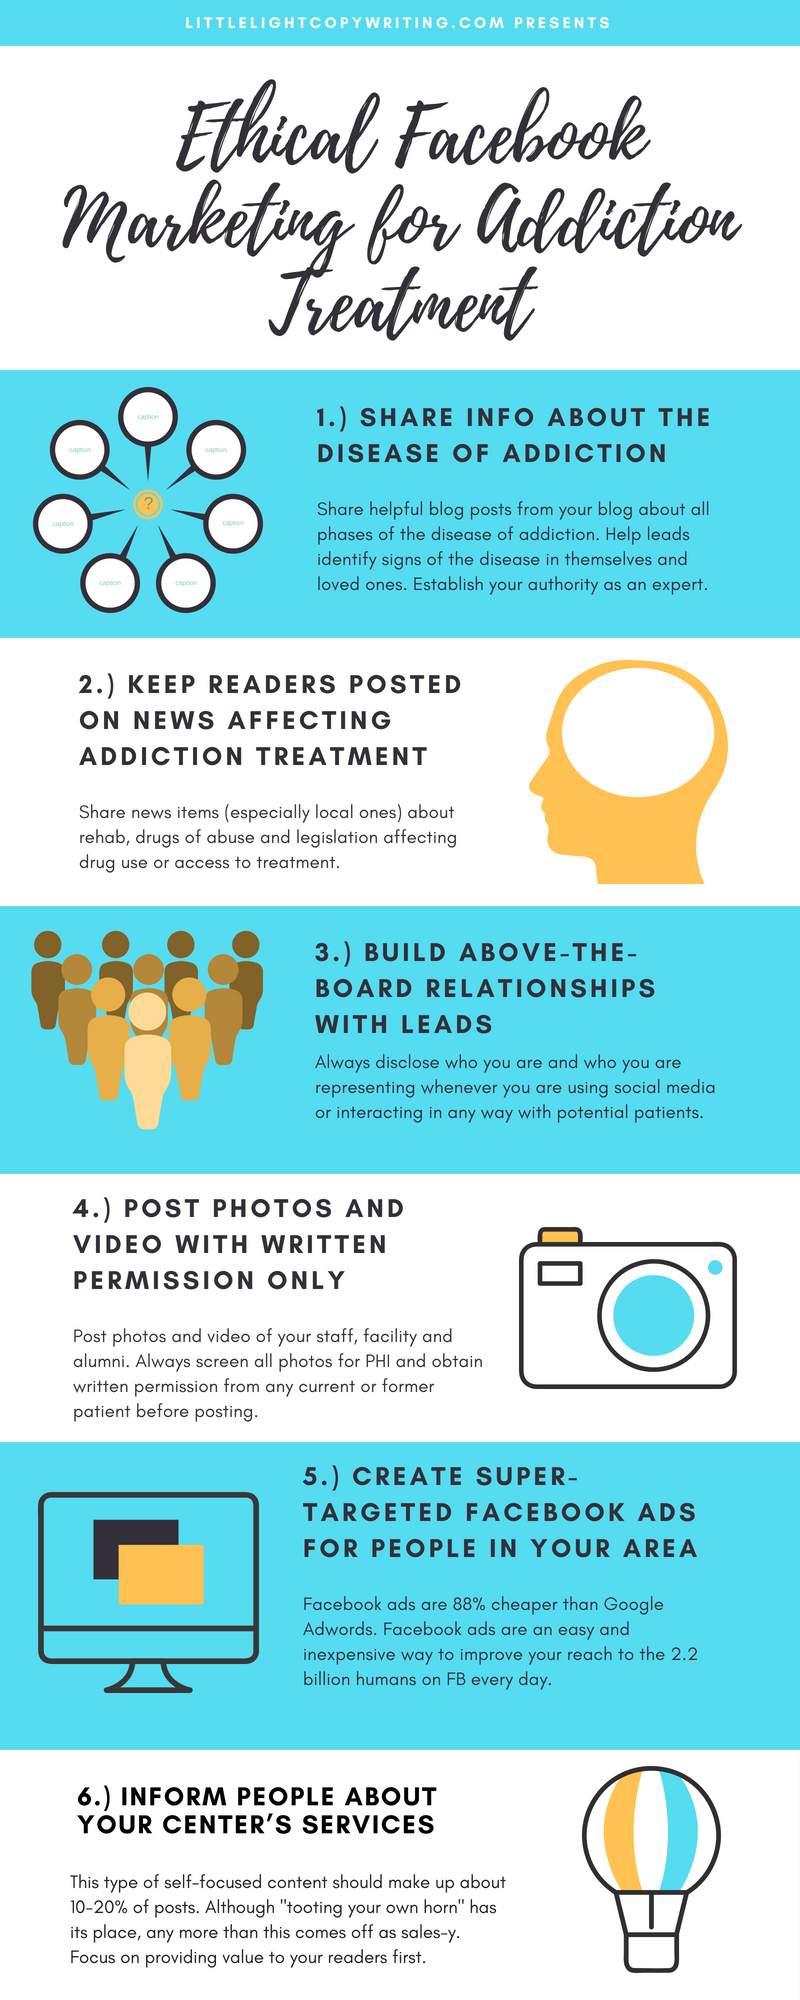 https://www.littlelightcopywriting.com/blog/2018/4/12/5-tips-for-hipaa-compliant-addiction-treatment-marketing